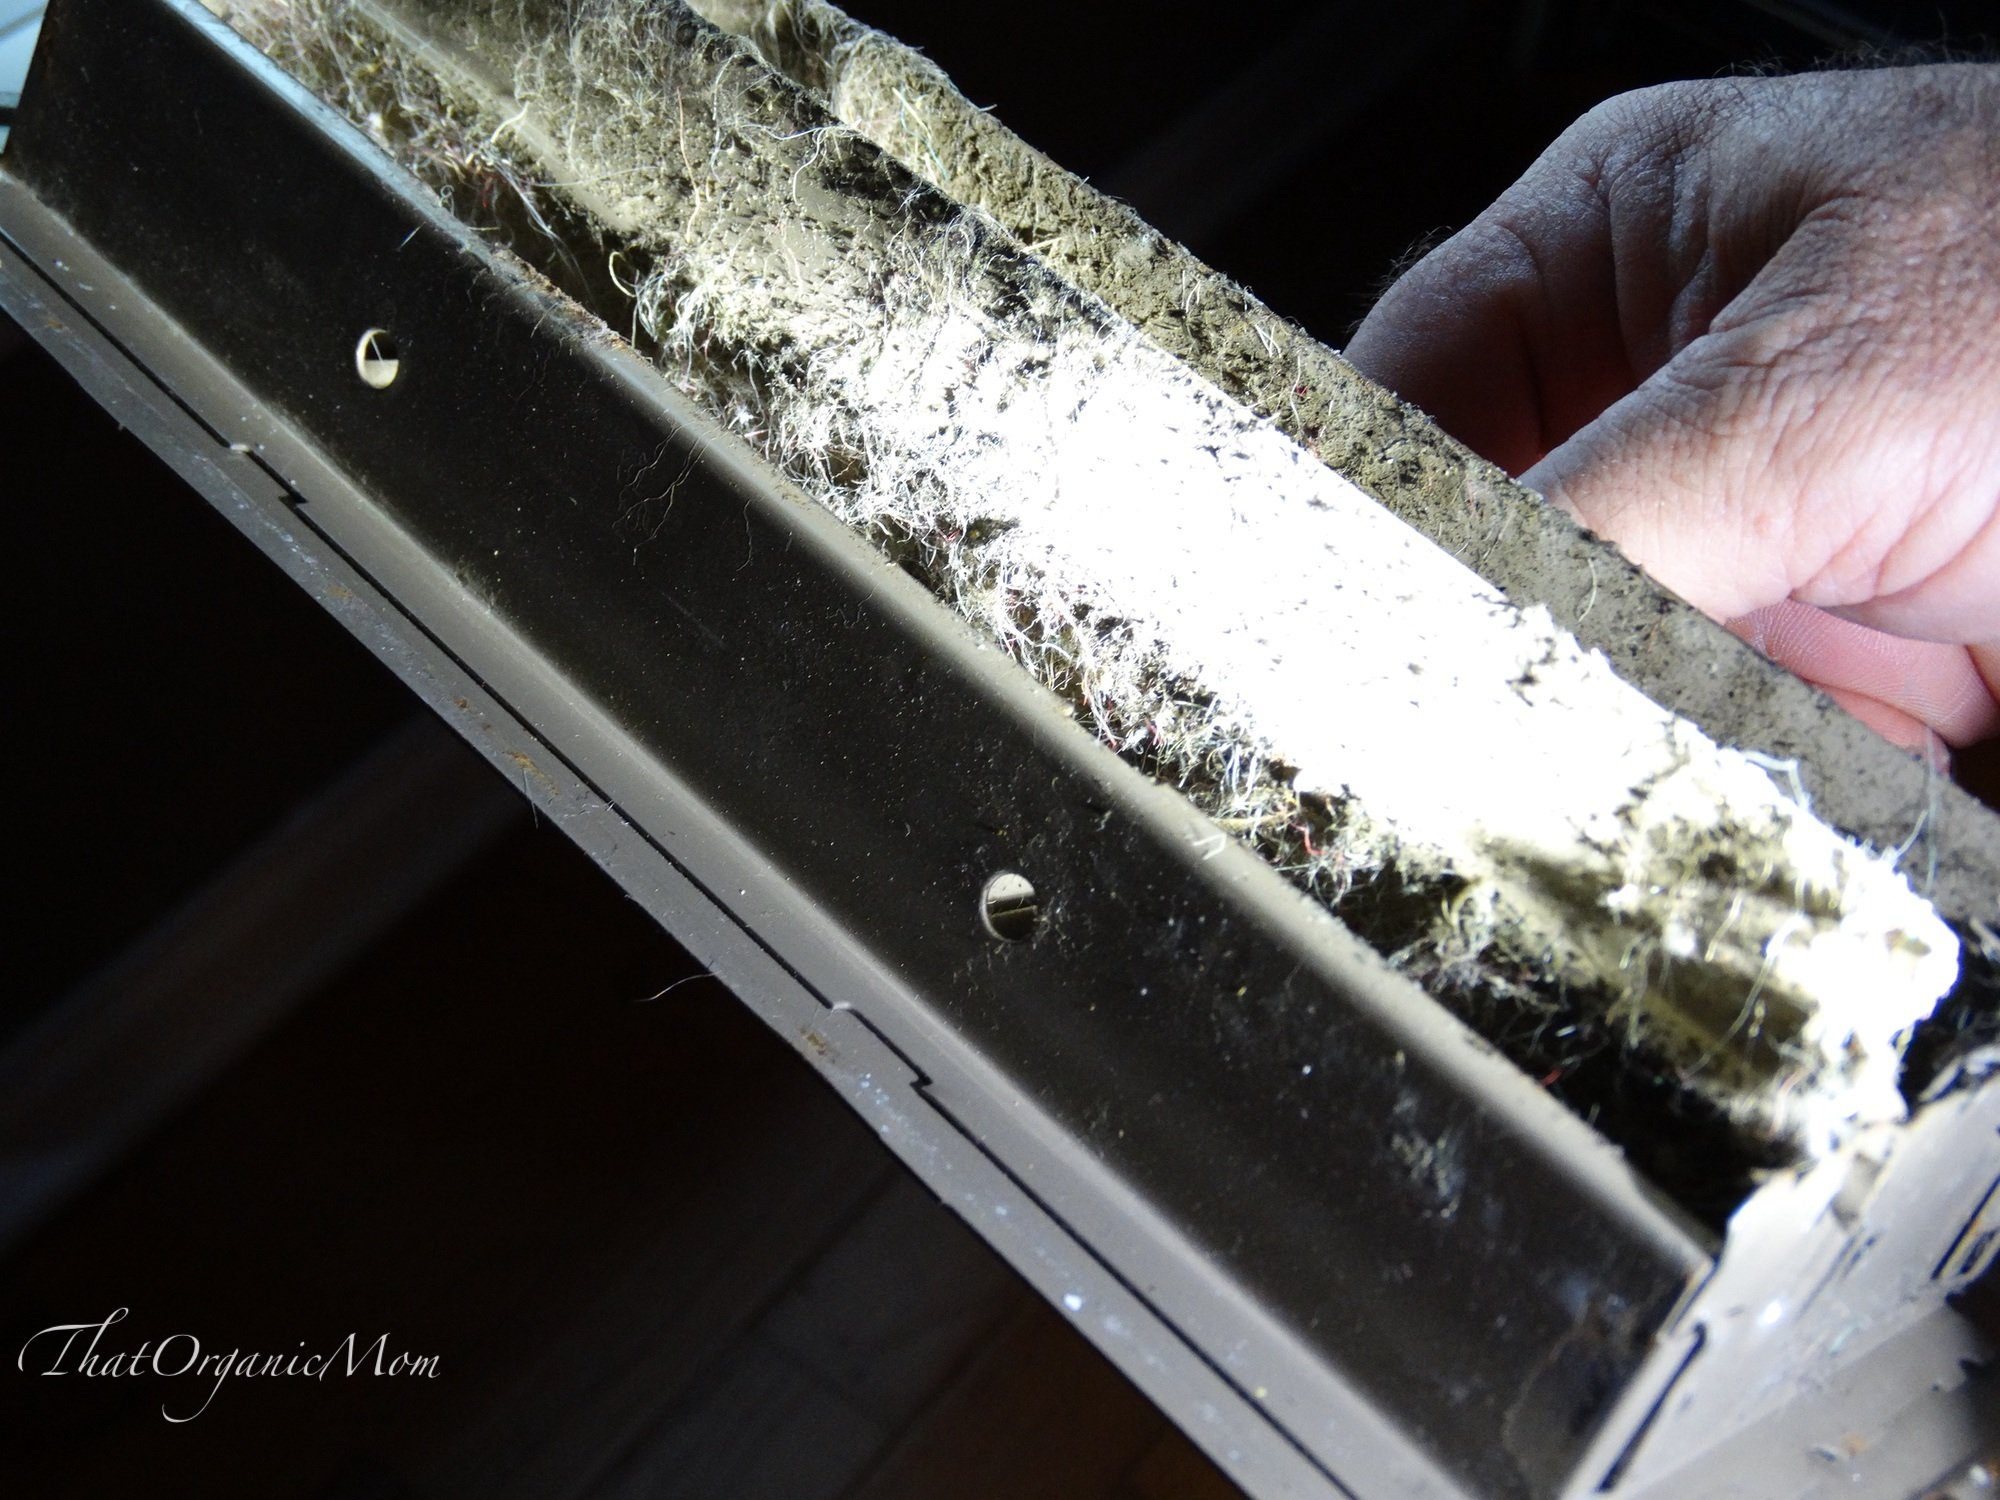 Mold Remediation Steps to remove mold from our home